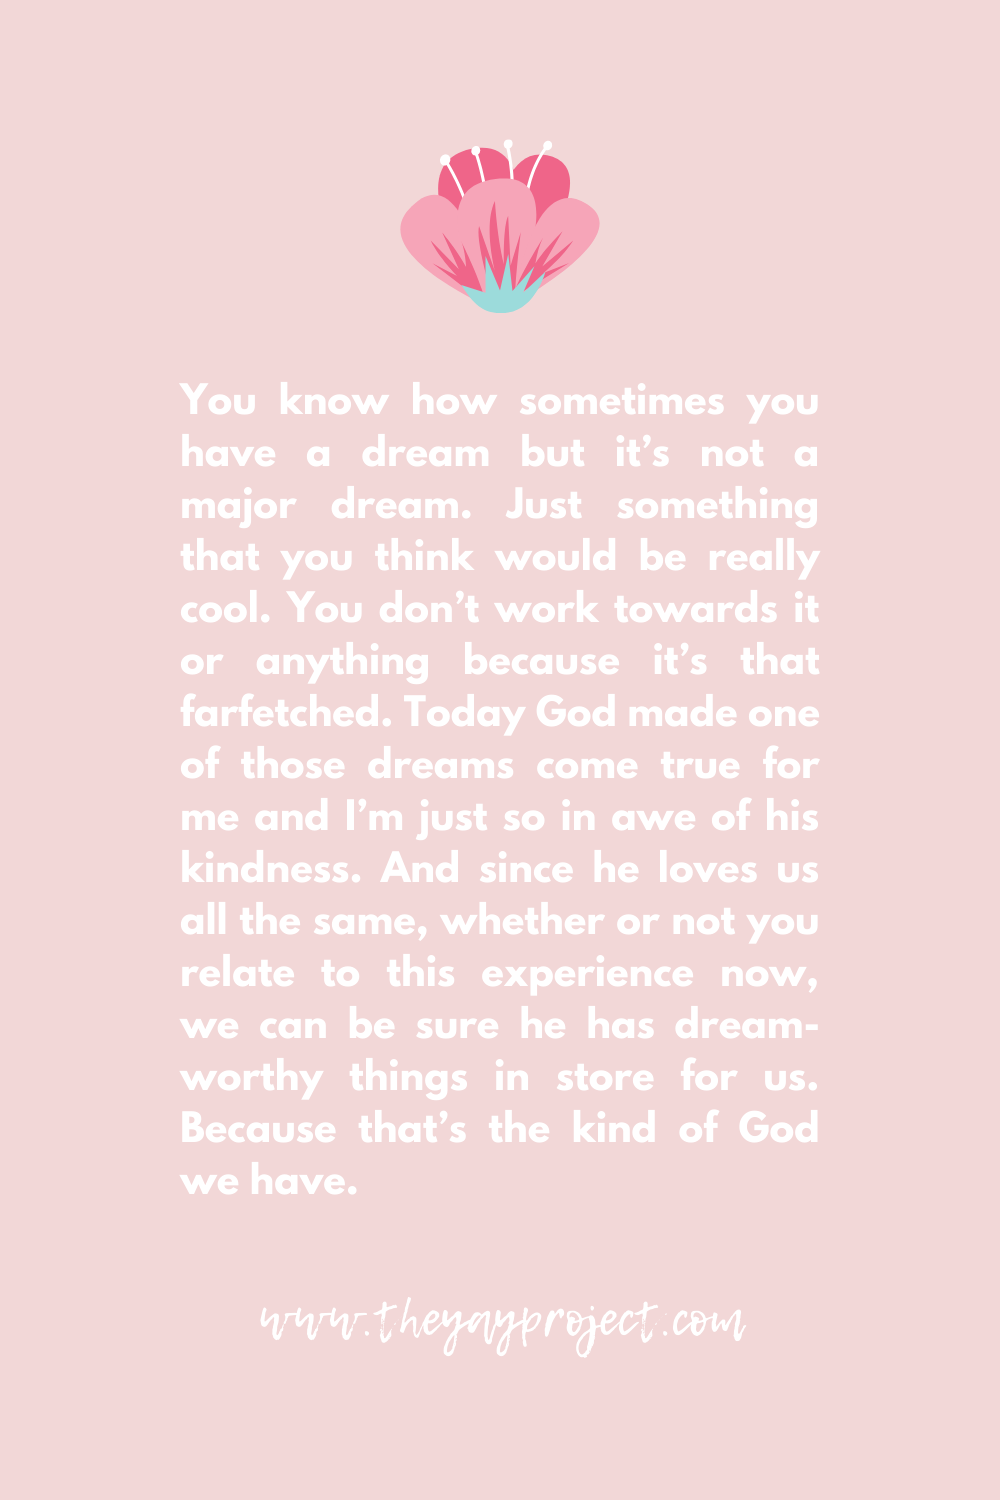 Christian prayer encouragement blog by The Yay Project